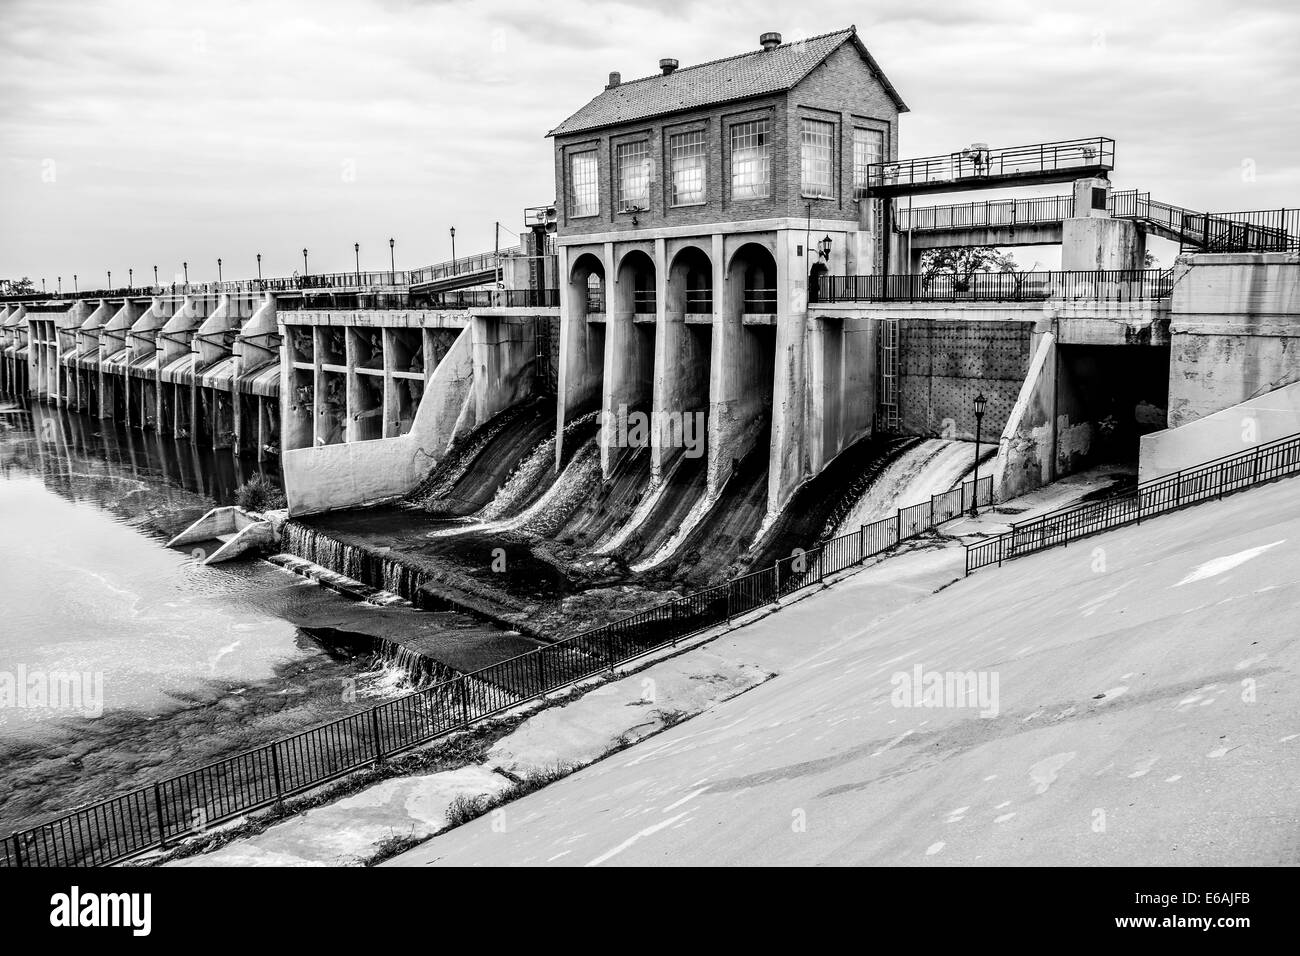 Lake overholser dam finished in 1918 built to impound the north lake overholser dam finished in 1918 built to impound the north canadian river and supply oklahoma city oklahoma usa sciox Image collections